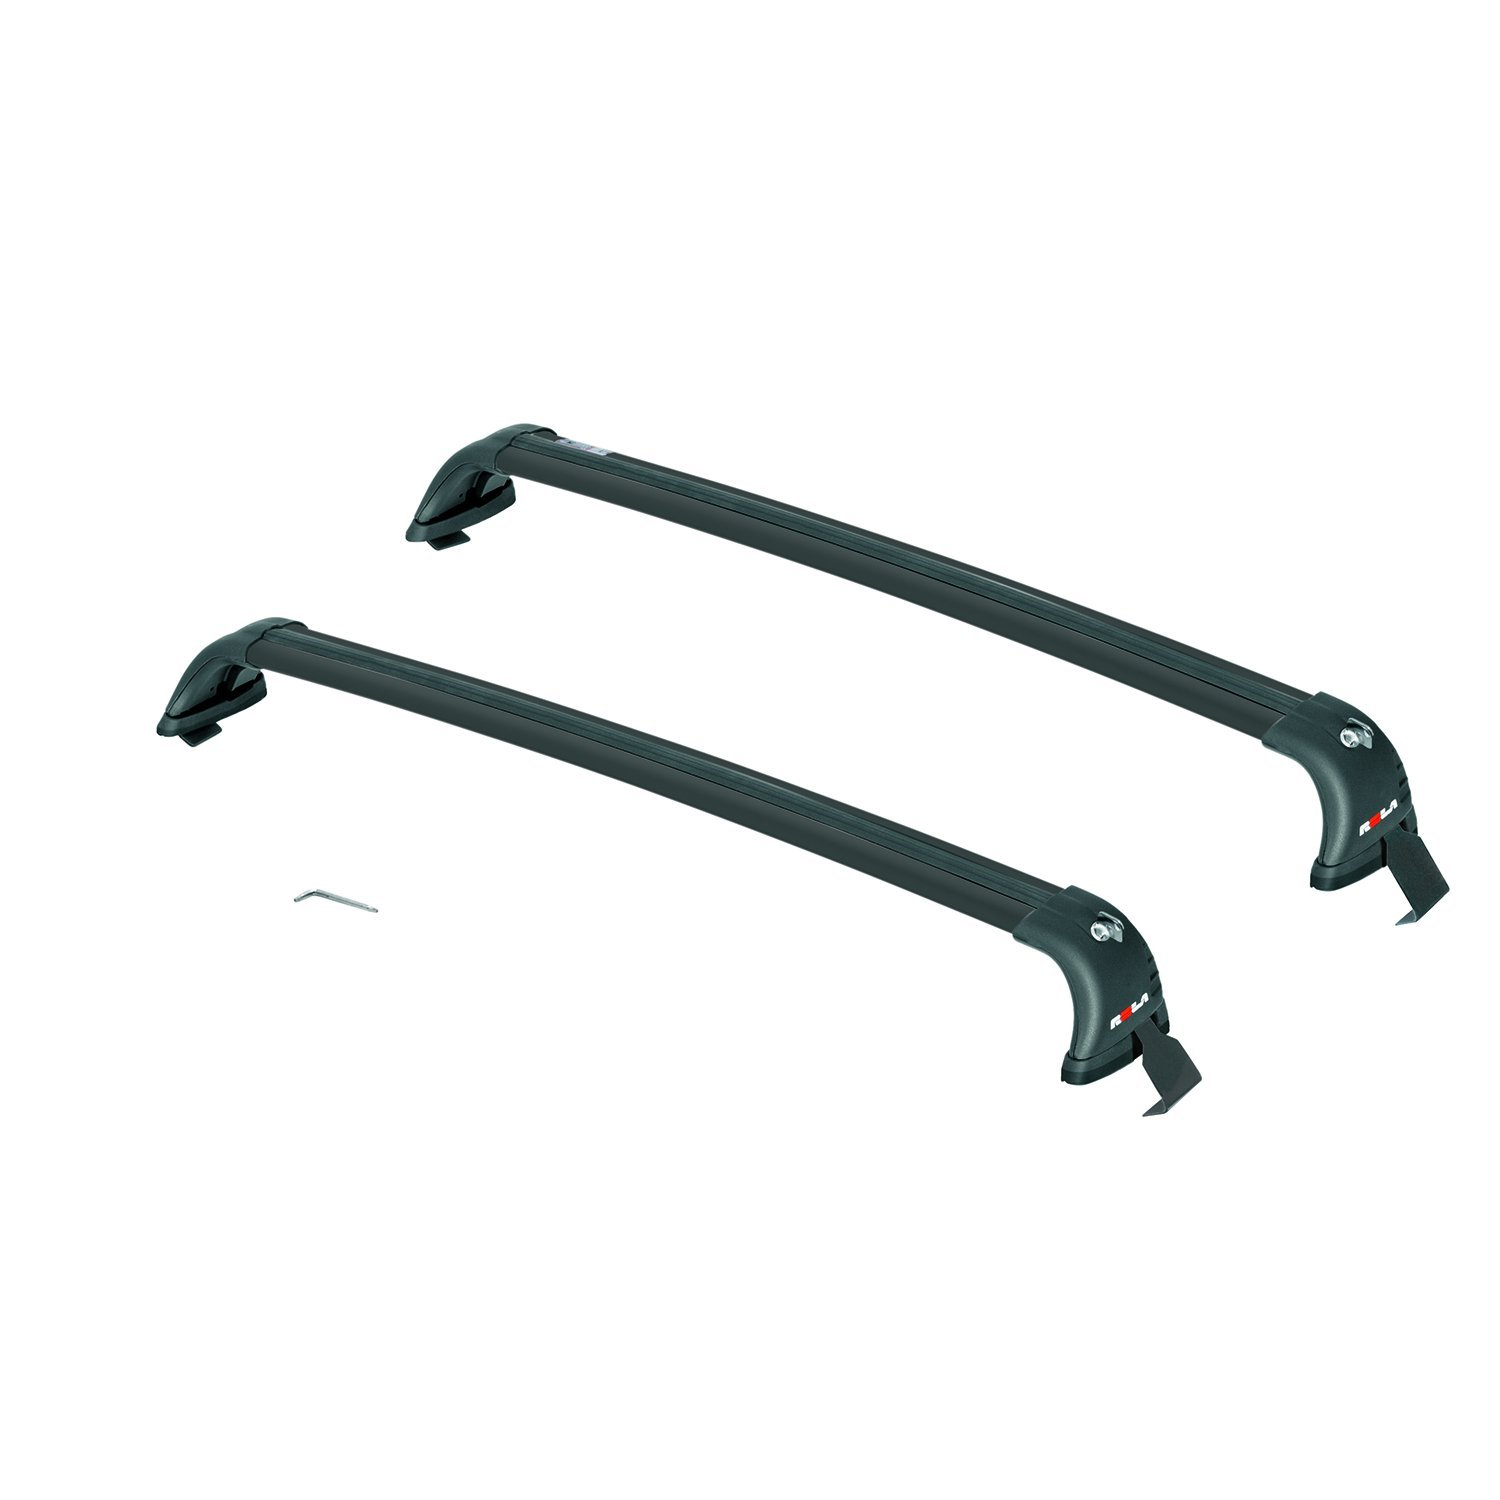 Rola 59752 Removable Mount GTX Series Roof Rack for Toyota Tacoma Crew and Extended Cabs